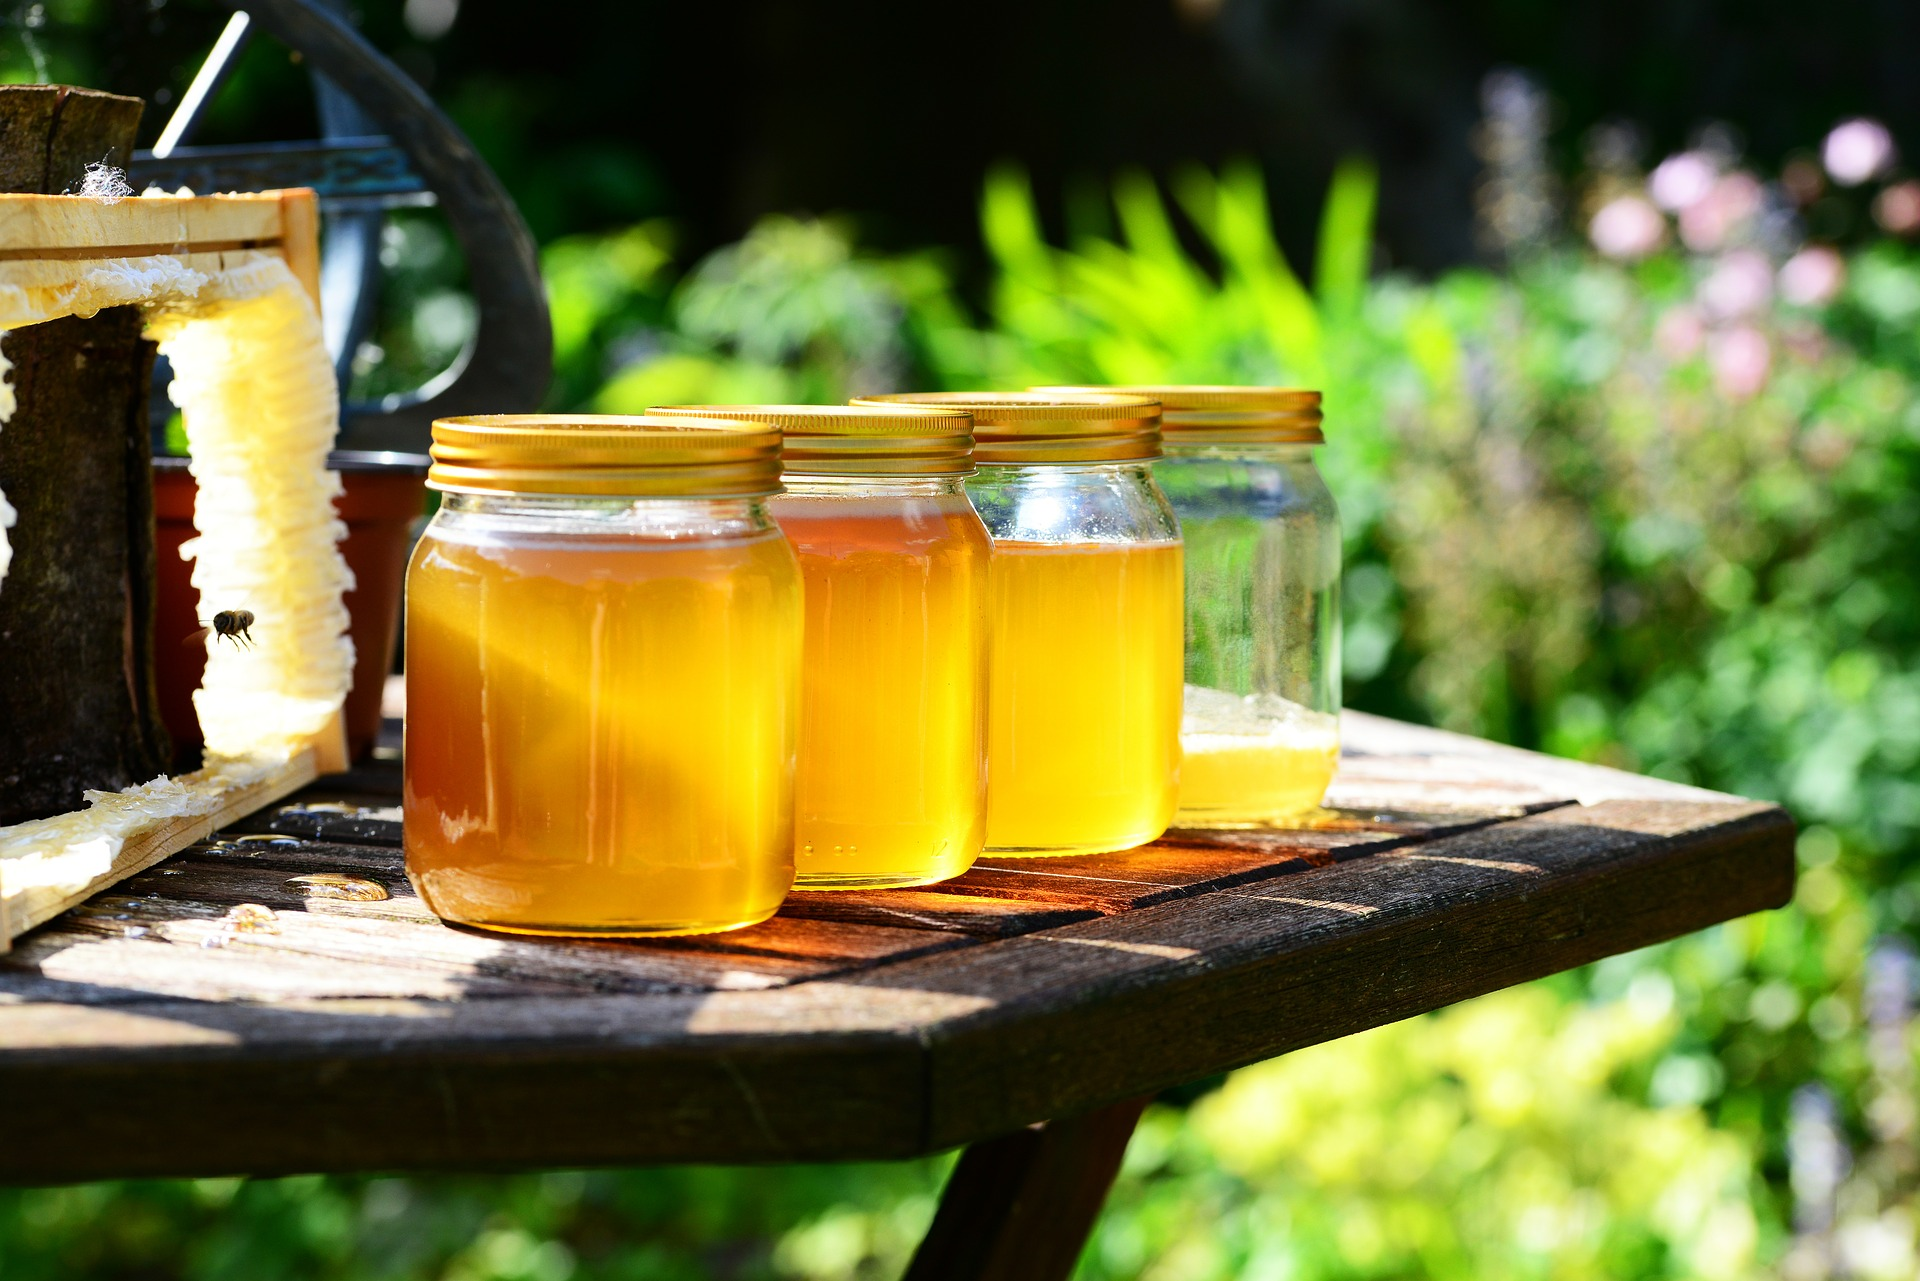 Image of mason jars full of honey sitting on a table outside with green leaves in background - TAB Bank